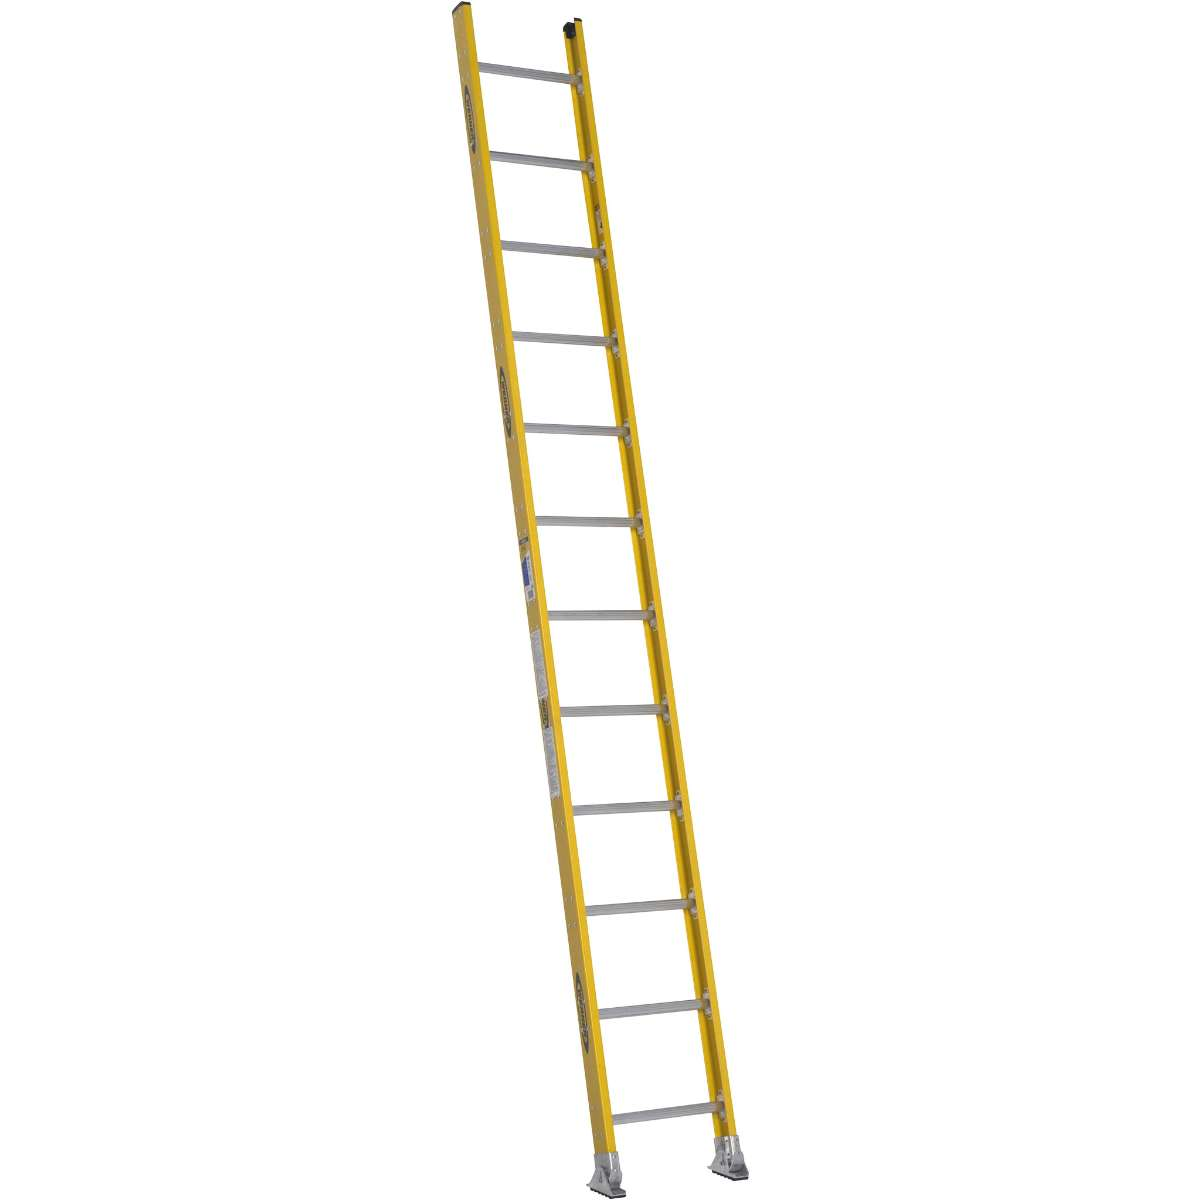 Fiberglass Round Rung Straight Ladder - 375 lb. Rated (7100-1)